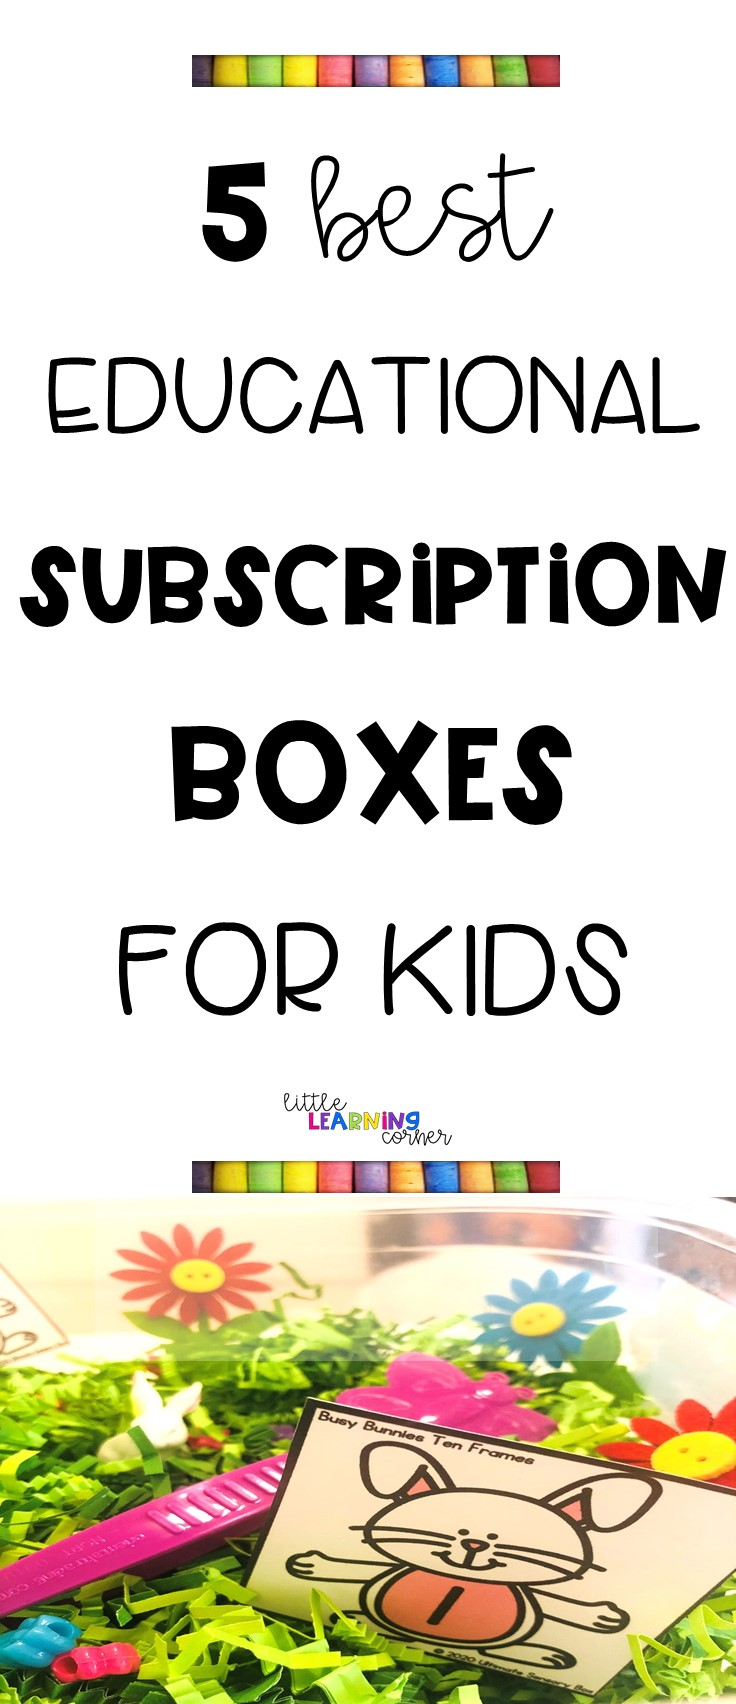 subscription-boxes-for-kids-pin-2